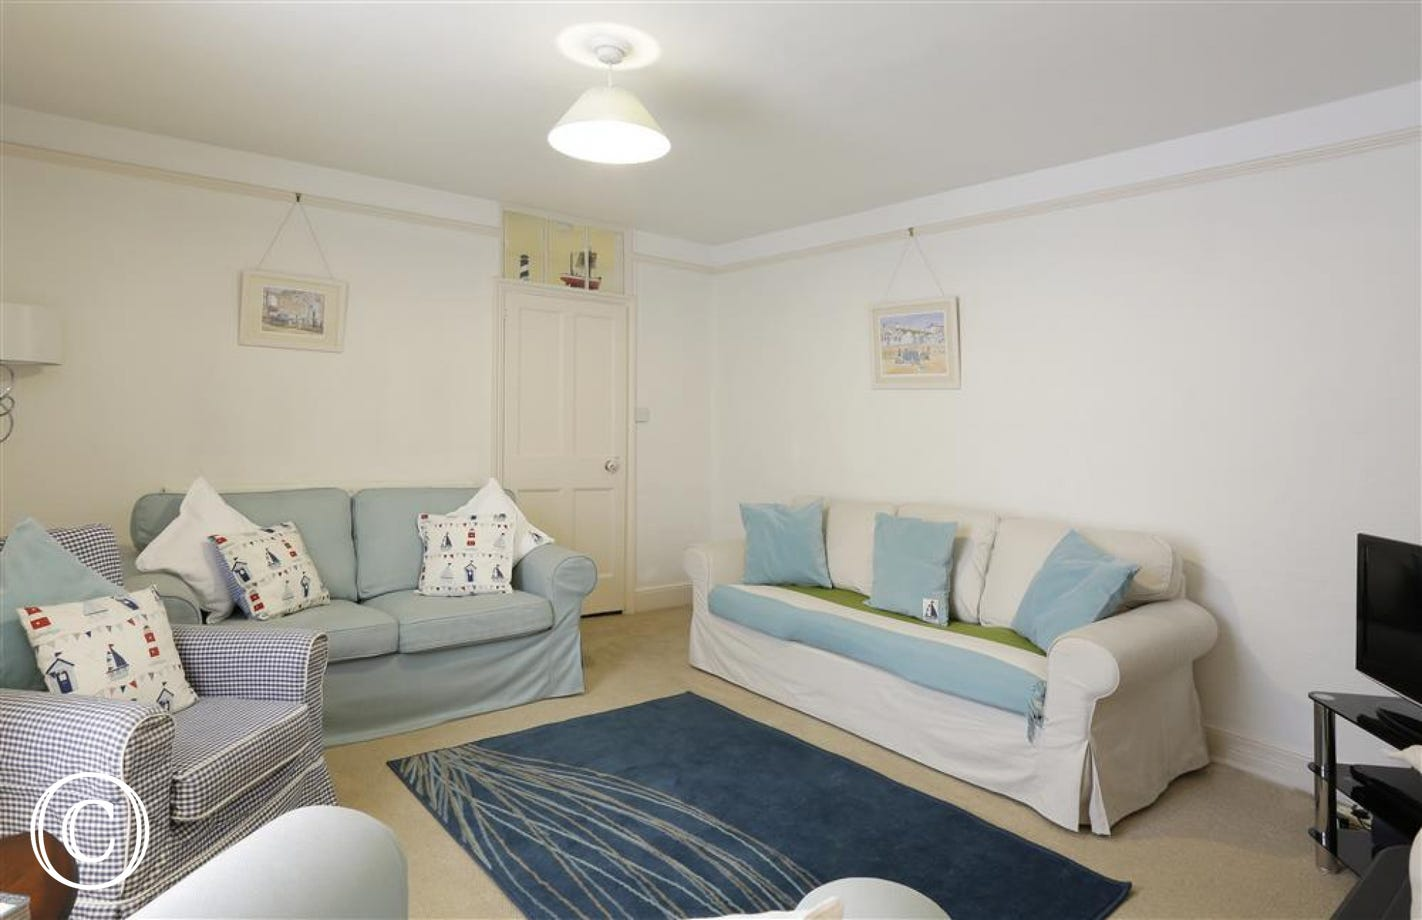 Relax in this room with a choice of different sofas and chairs.